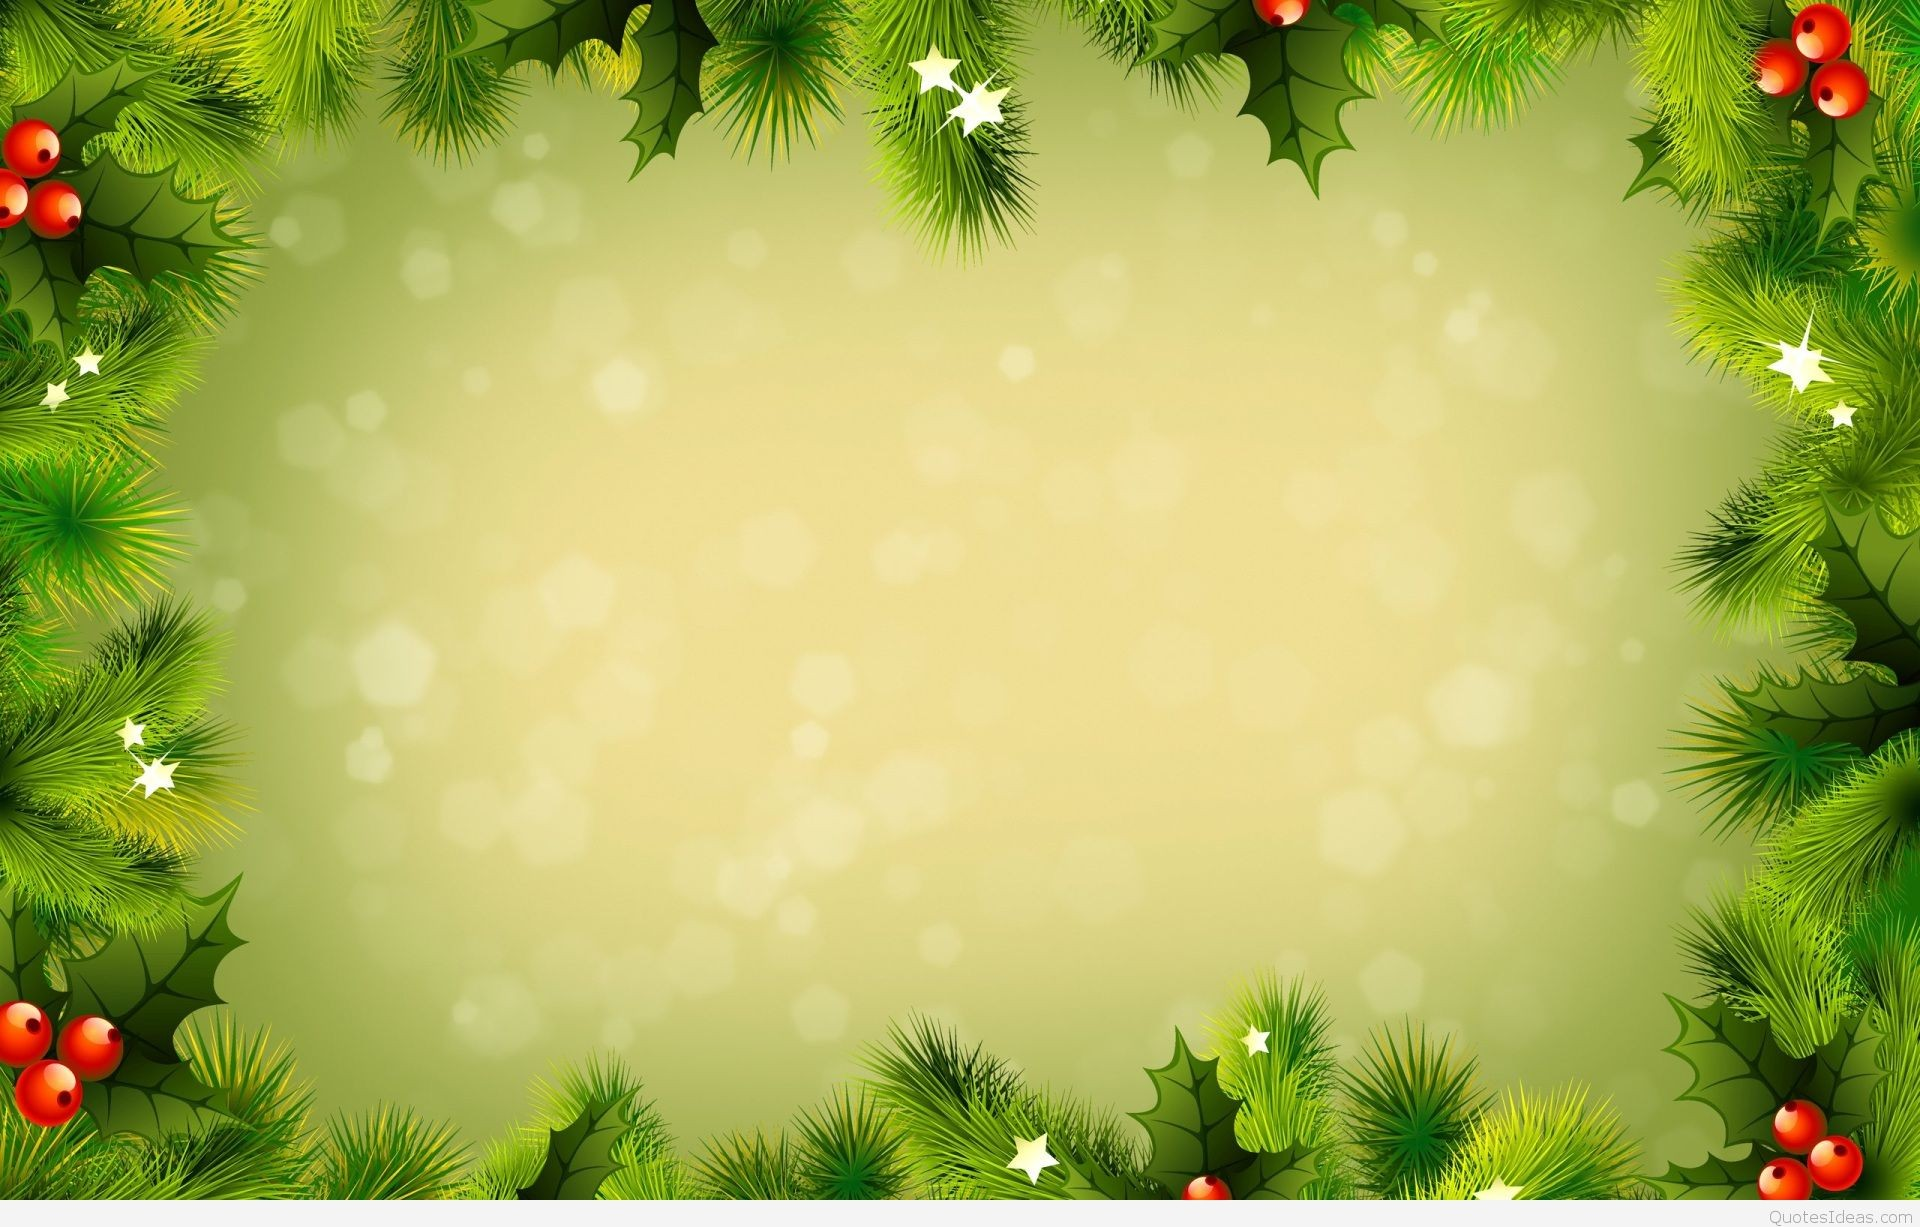 Free Ipad Wallpaper Christmas: Christmas Background Tumblr ·① Download Free Wallpapers